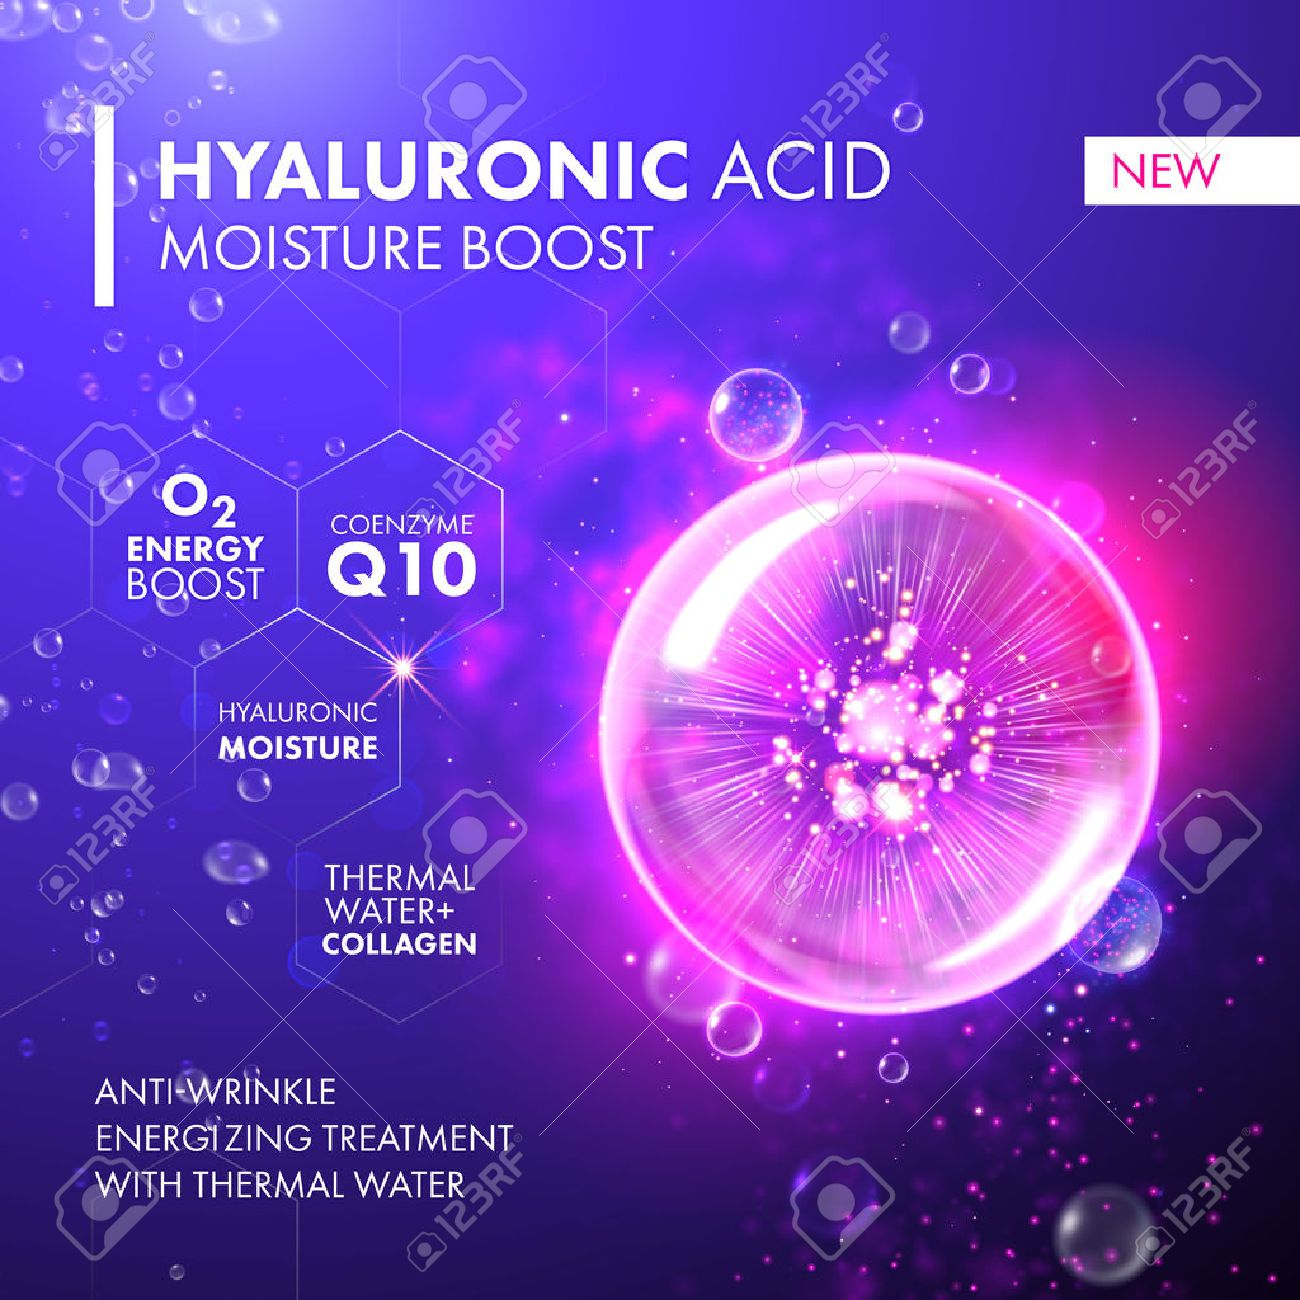 Hyaluronic Acid Moisture Boost. O2 collagen water molecule pink bubble drop. Skin care marine oxygen formula treatment design. Coenzyme anti wrinkle thermal water solution. - 59131583